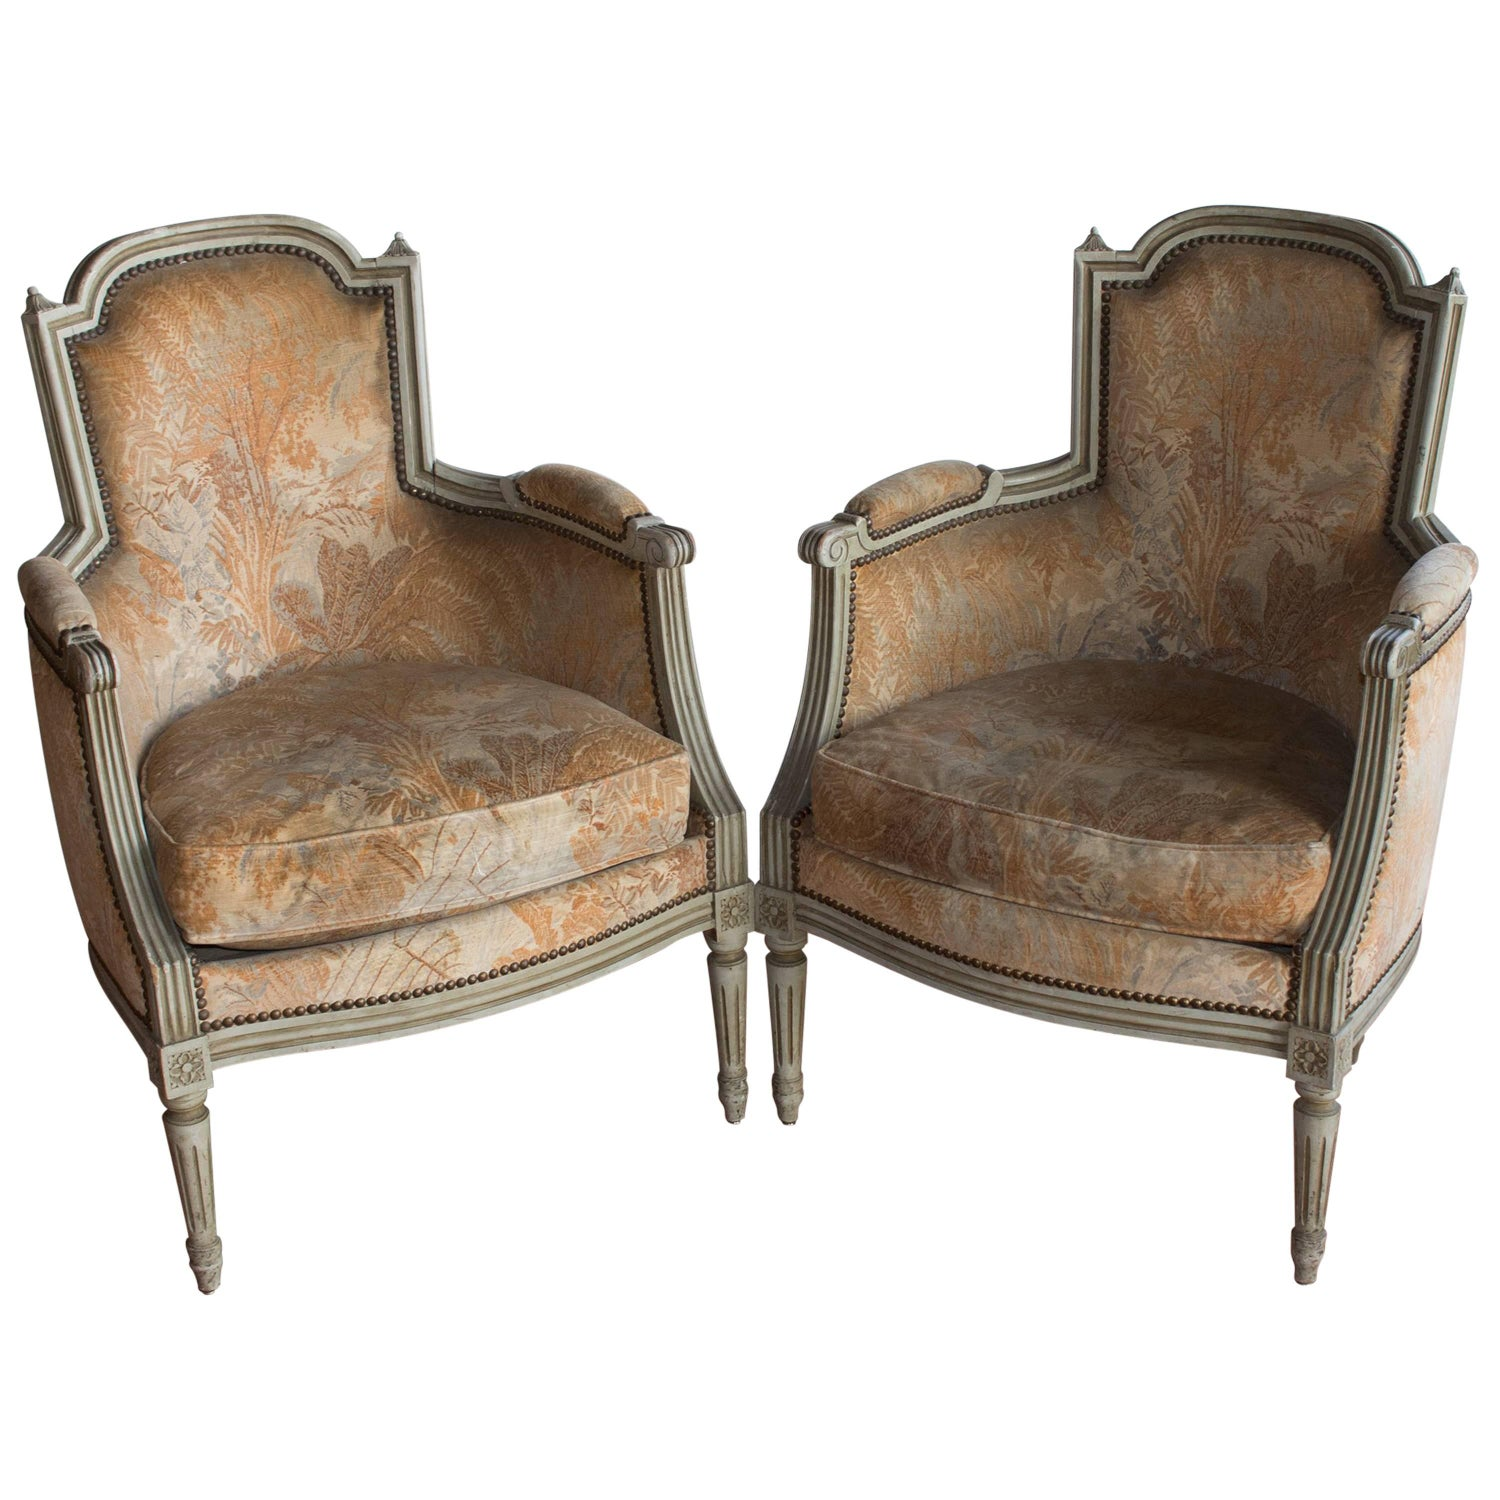 French Louis XVI Style Bergere Chair 1950 at 1stdibs